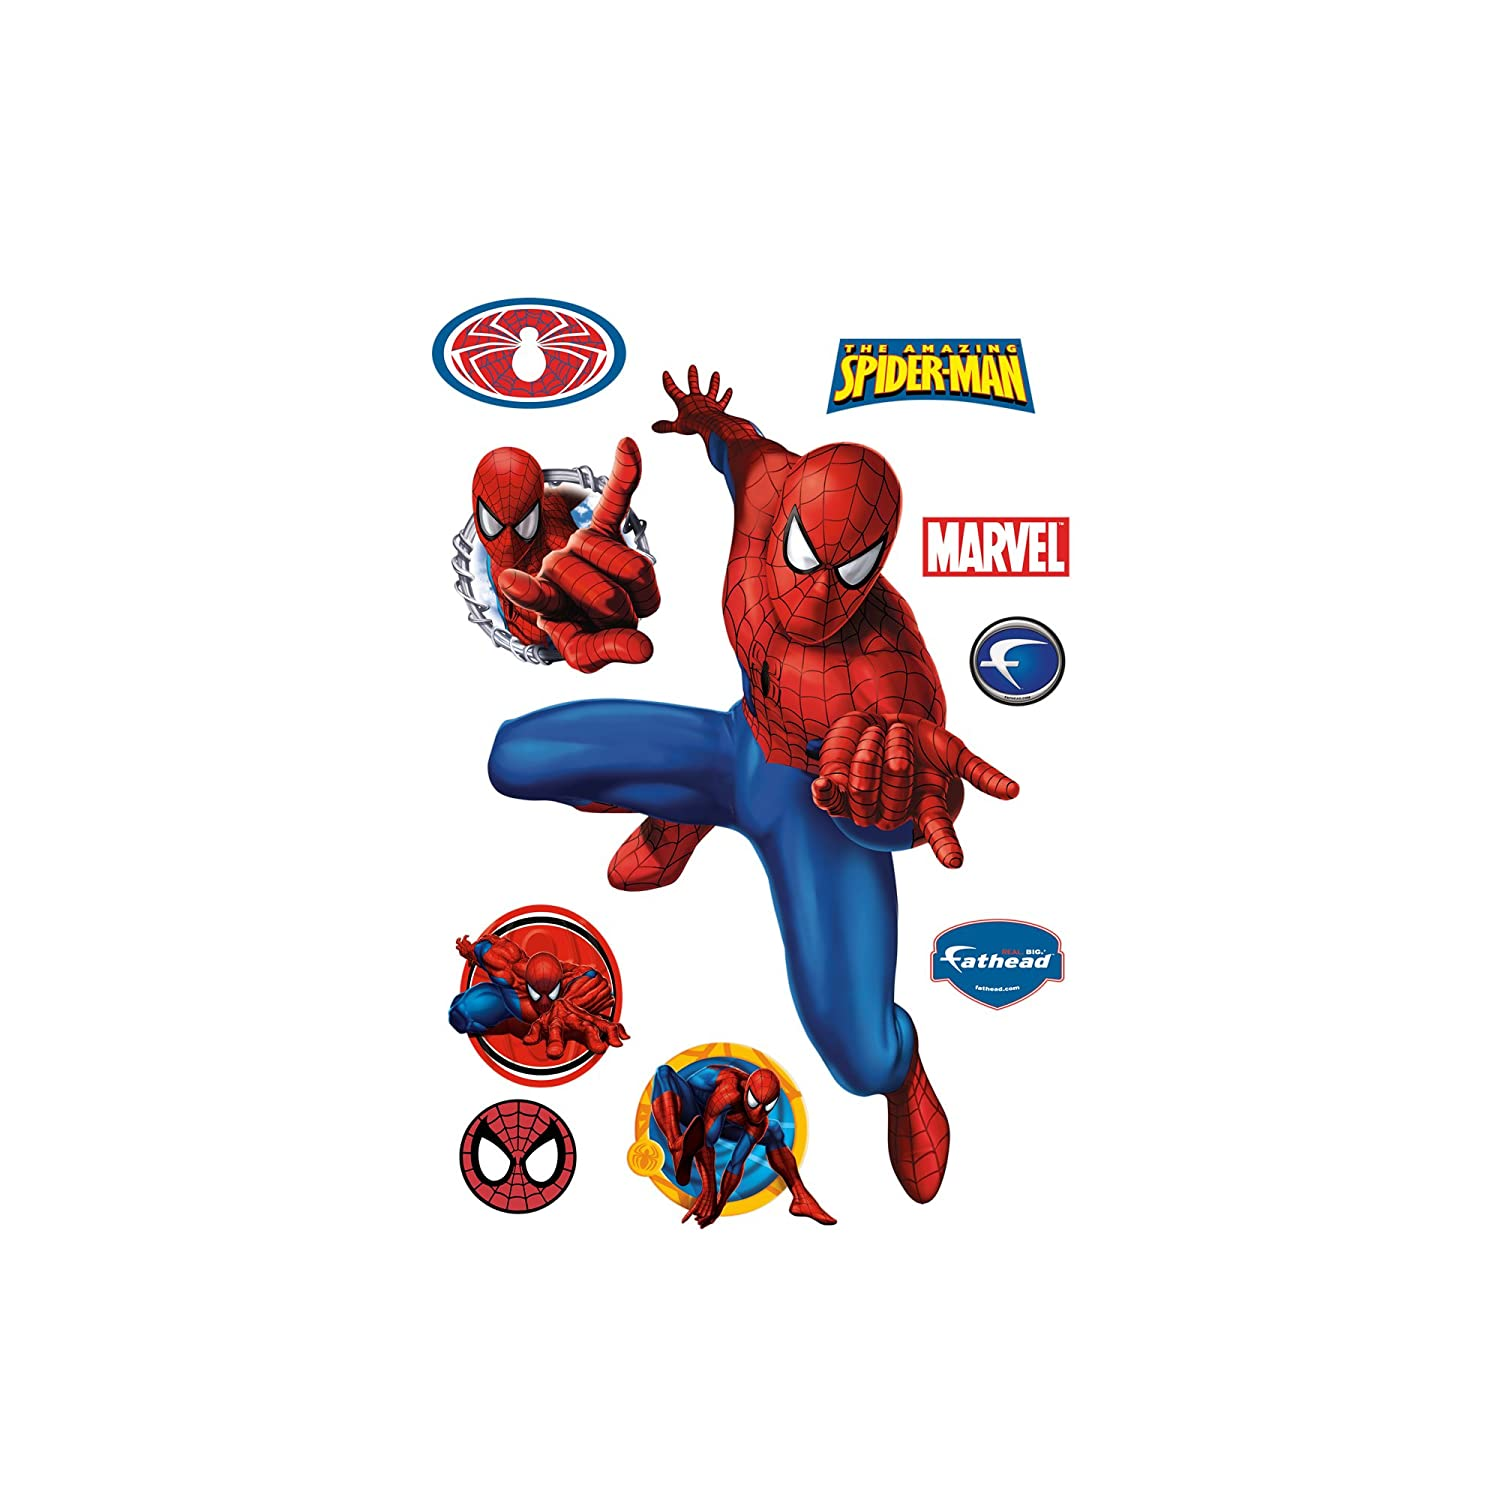 Spiderman Webslinger Wall Decal